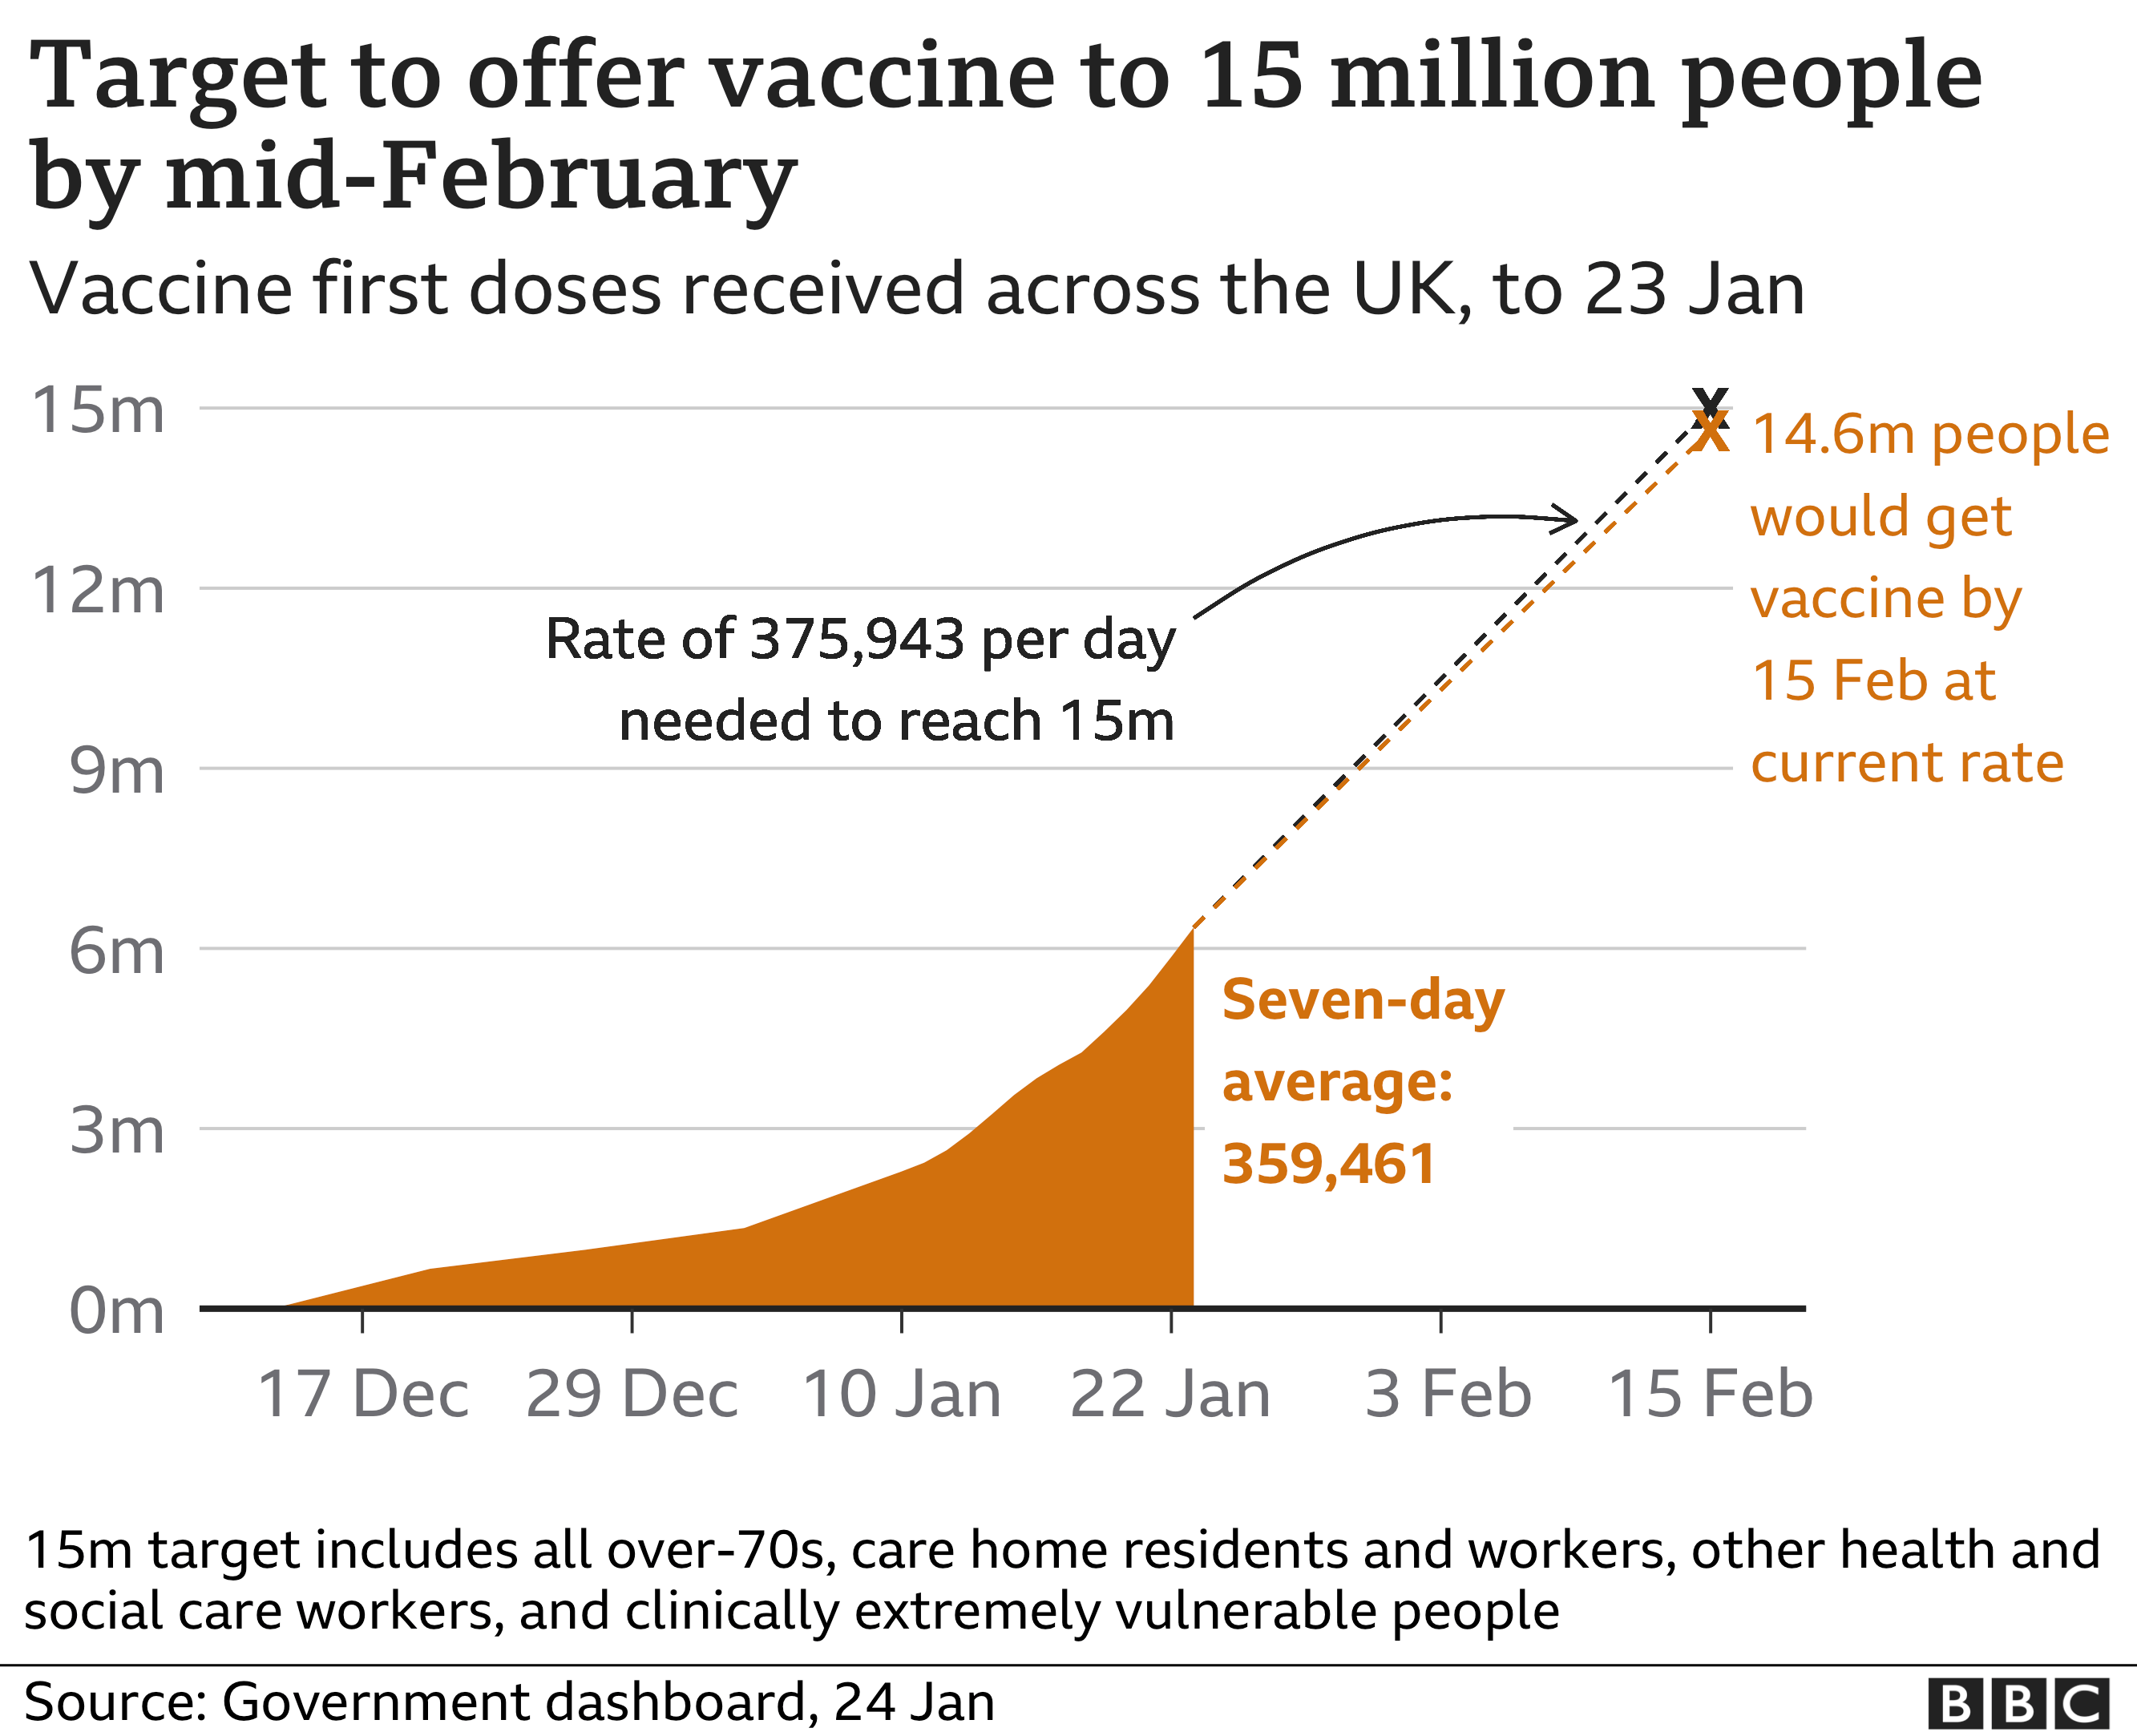 Chart showing the latest data on the UK's vaccination effort